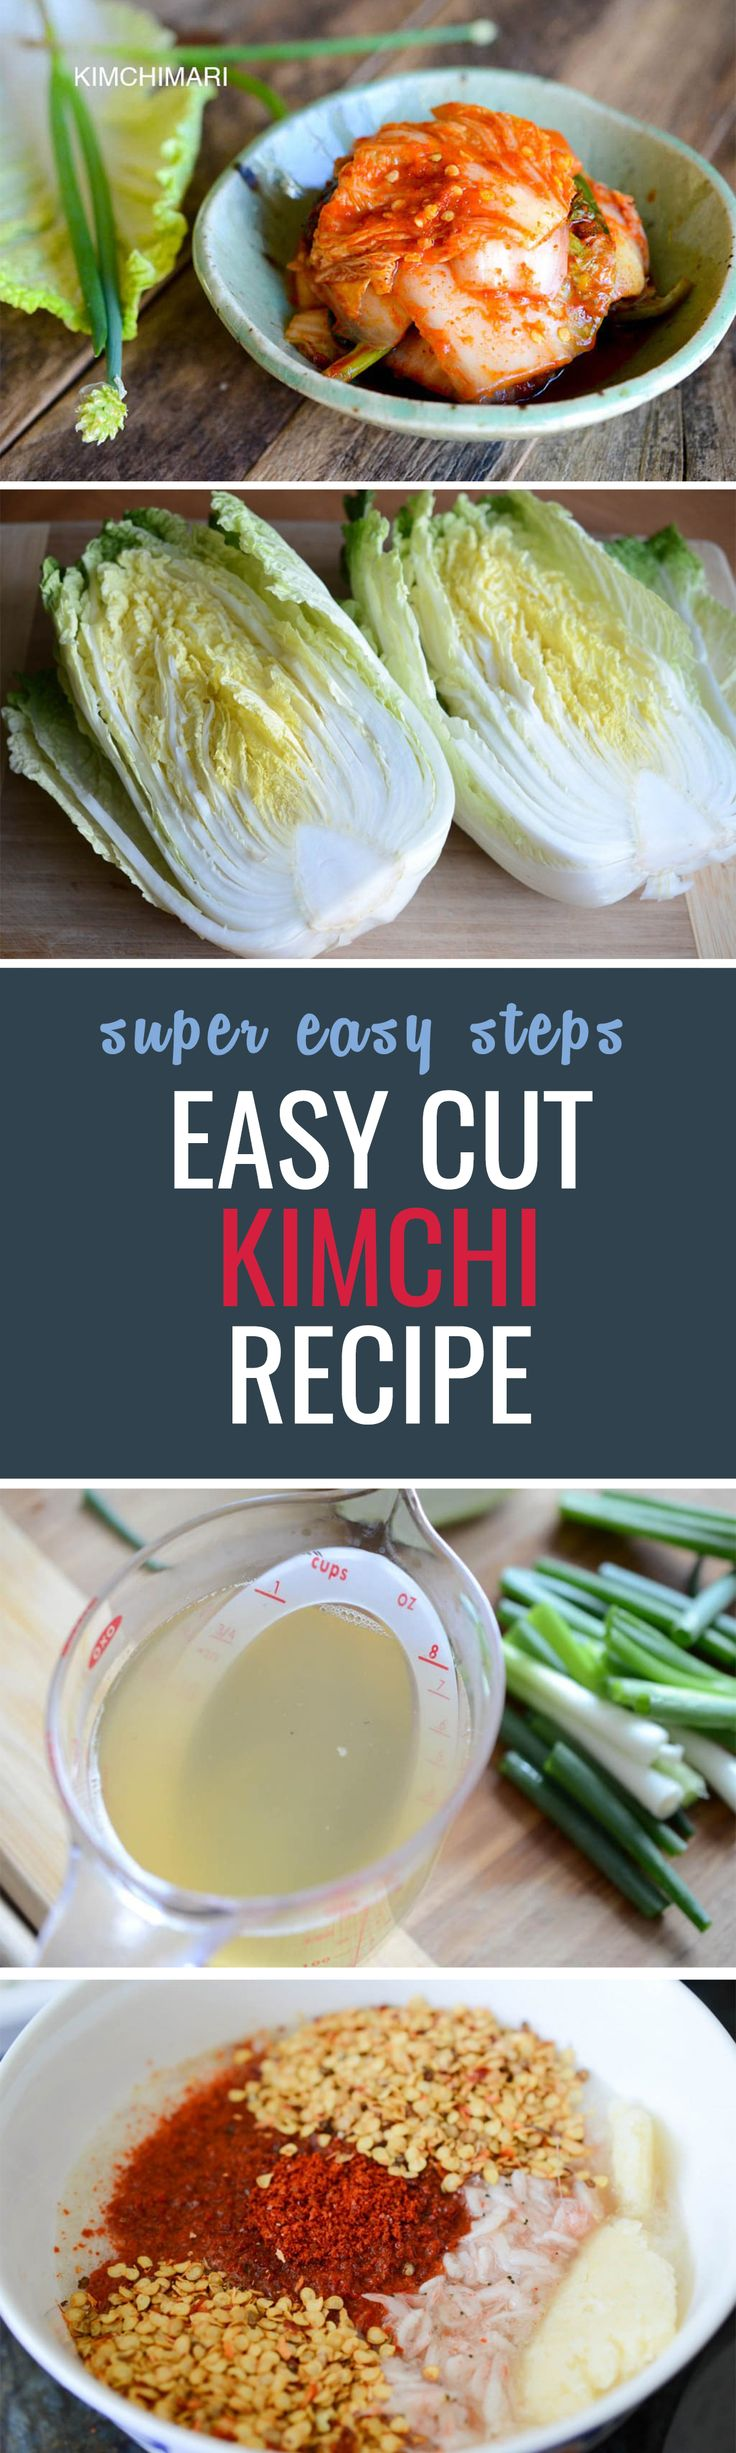 Super easy kimchi recipe, try it at home tonight!